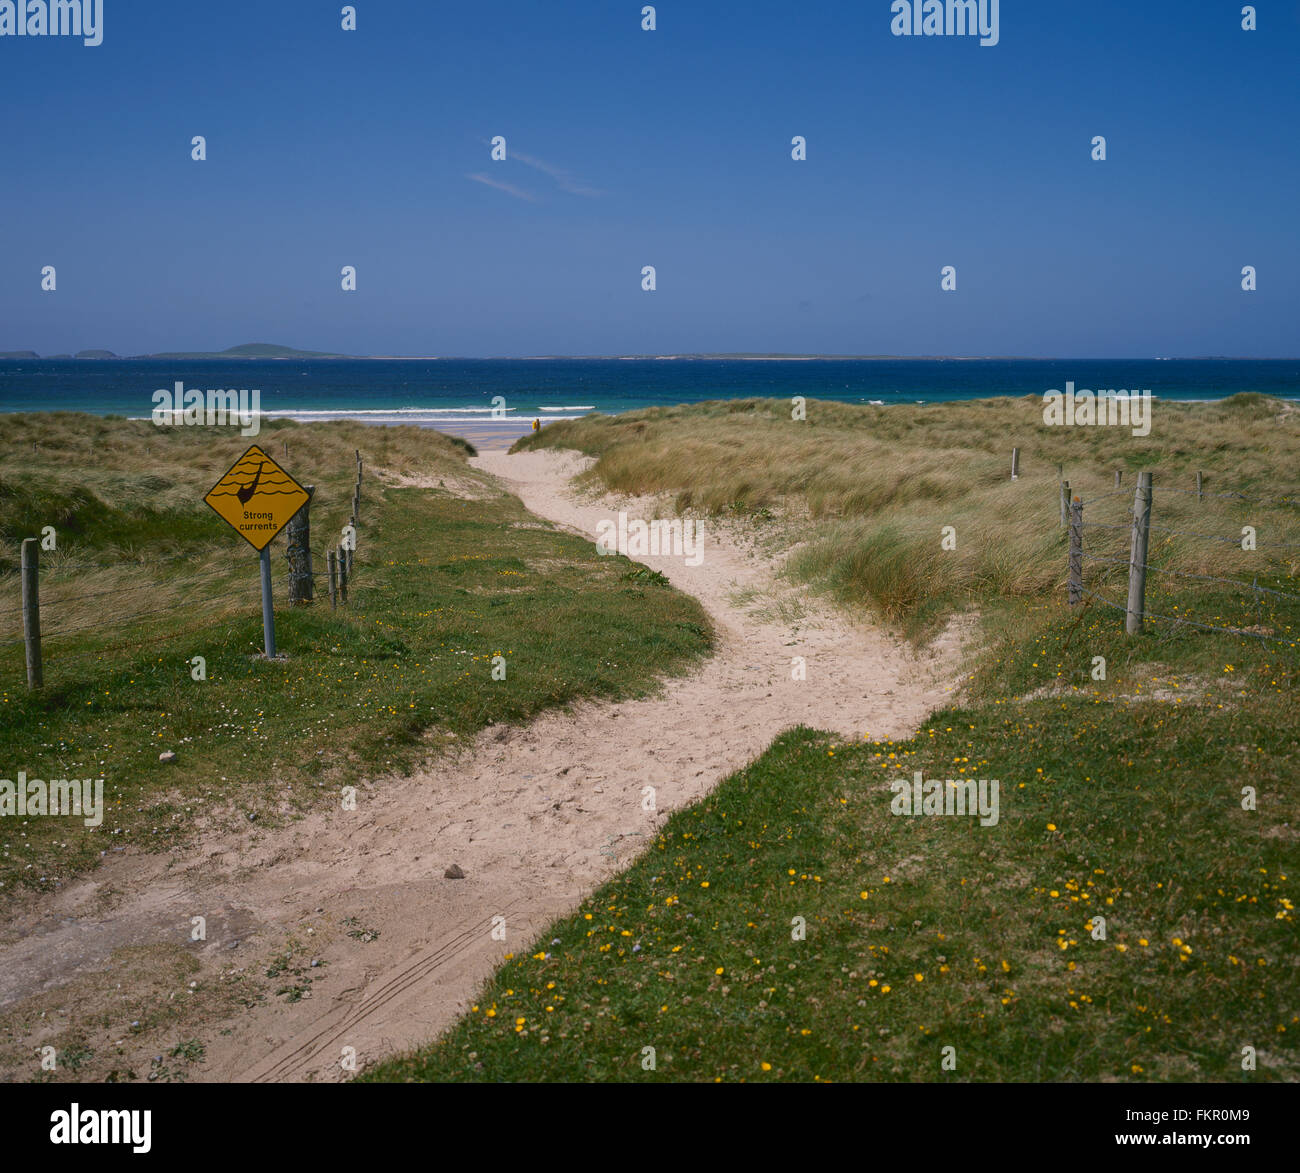 sandy path to beach with sign warning of strong currents on Belmullet, Co Mayo, West Coast of Ireland, Ireland - Stock Image